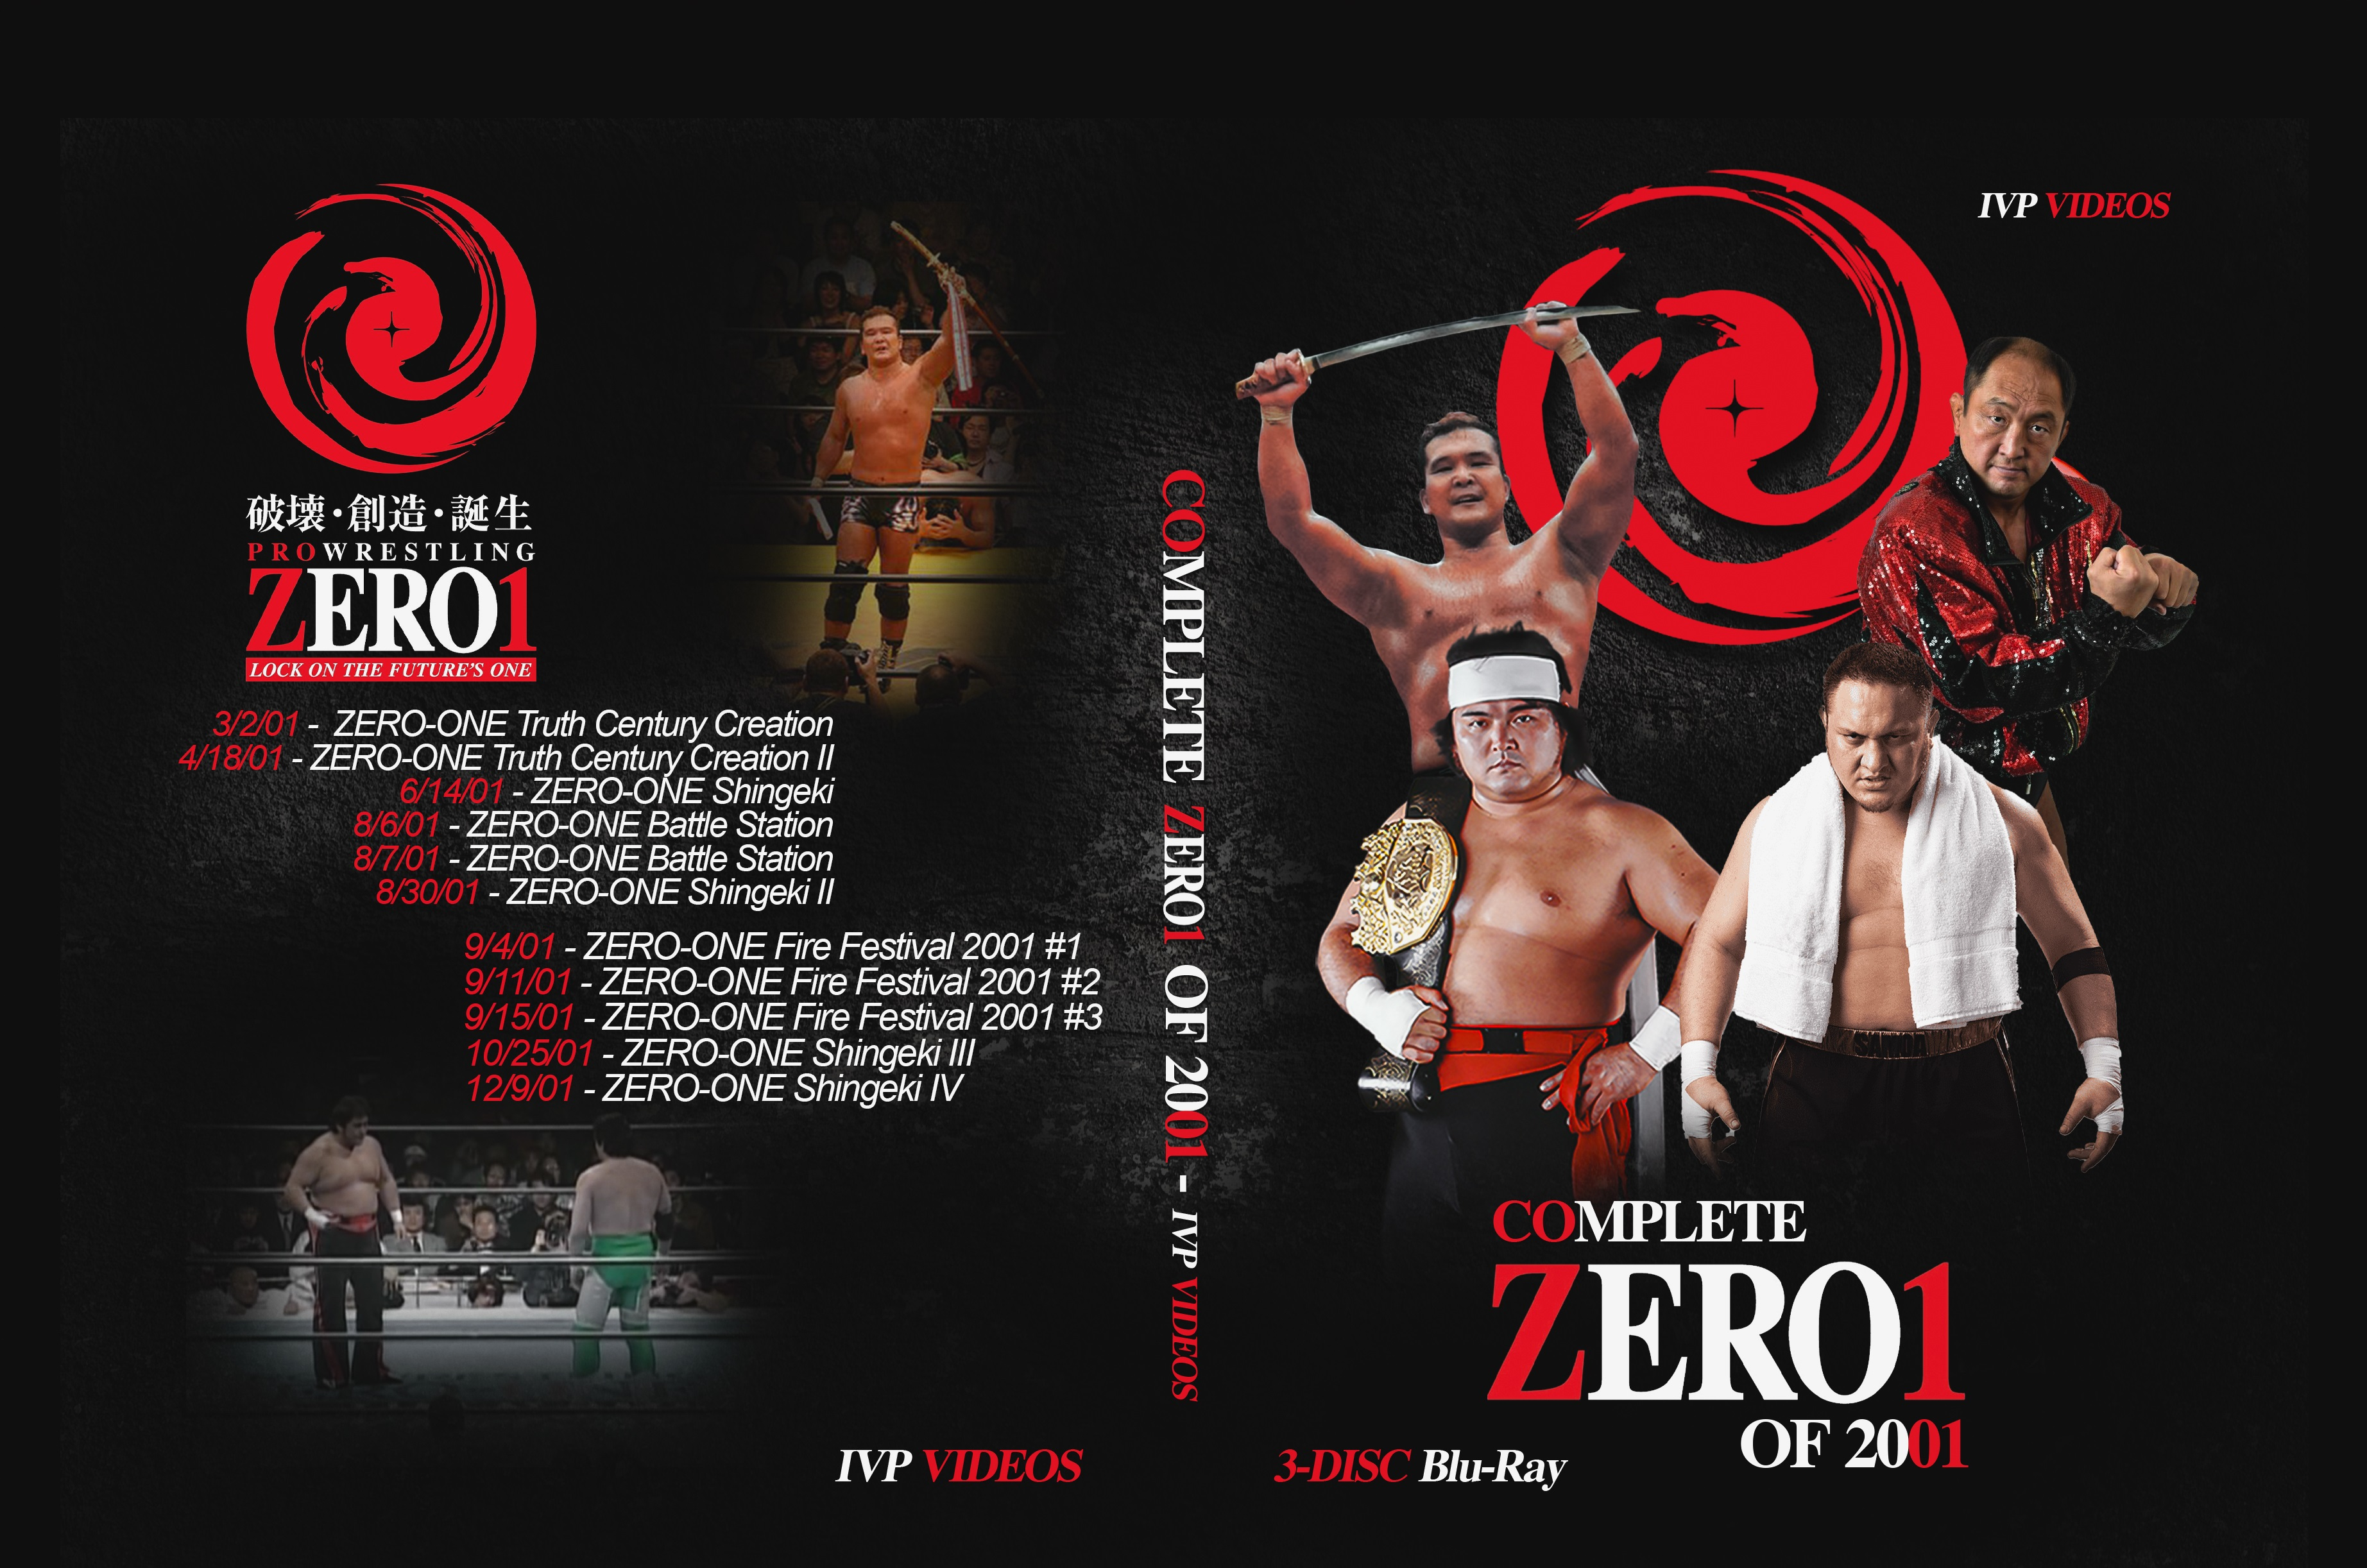 Complete Zero1 in 2001 (3 Disc Blu-Ray with Cover Art)